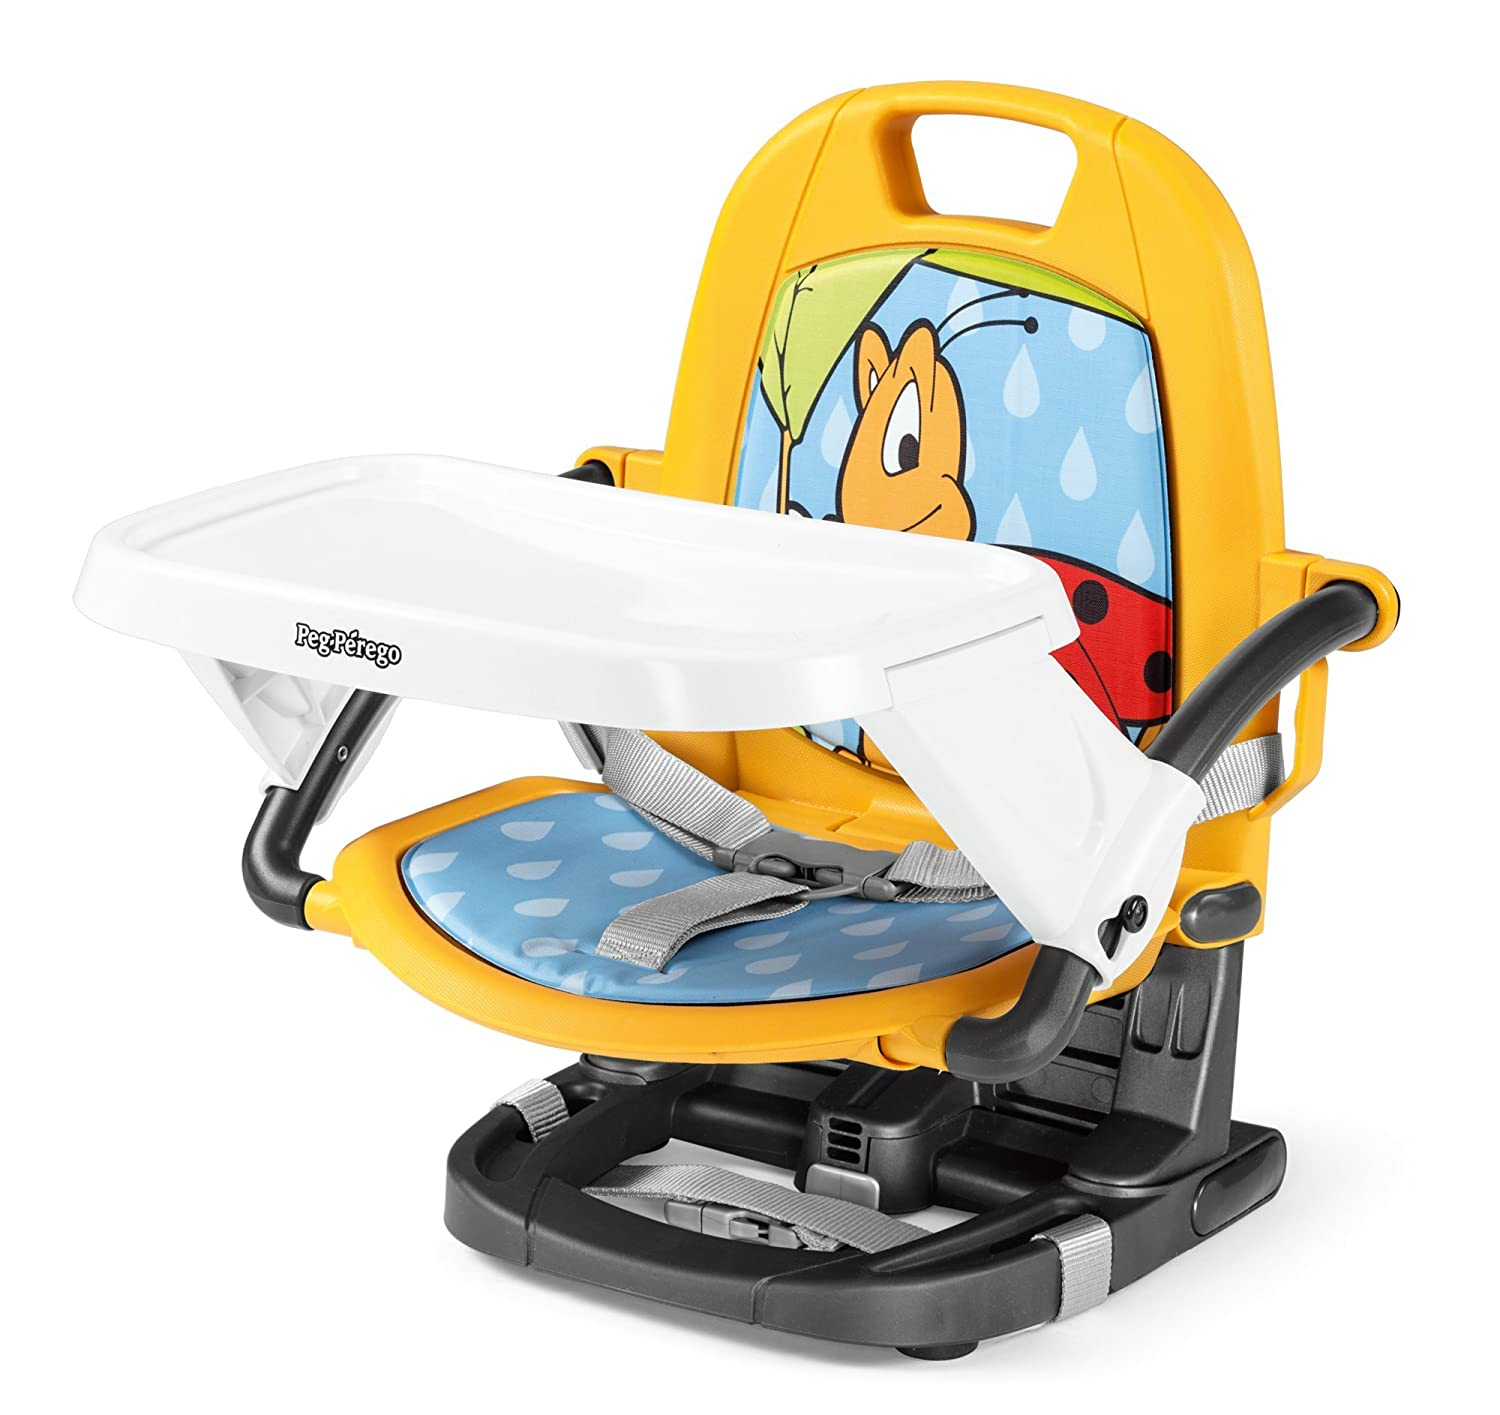 Booster Chair That Is Easy To Open, Close And Carry Anywhere Rialto Tucano Peg Perego HRIAX1TUCA